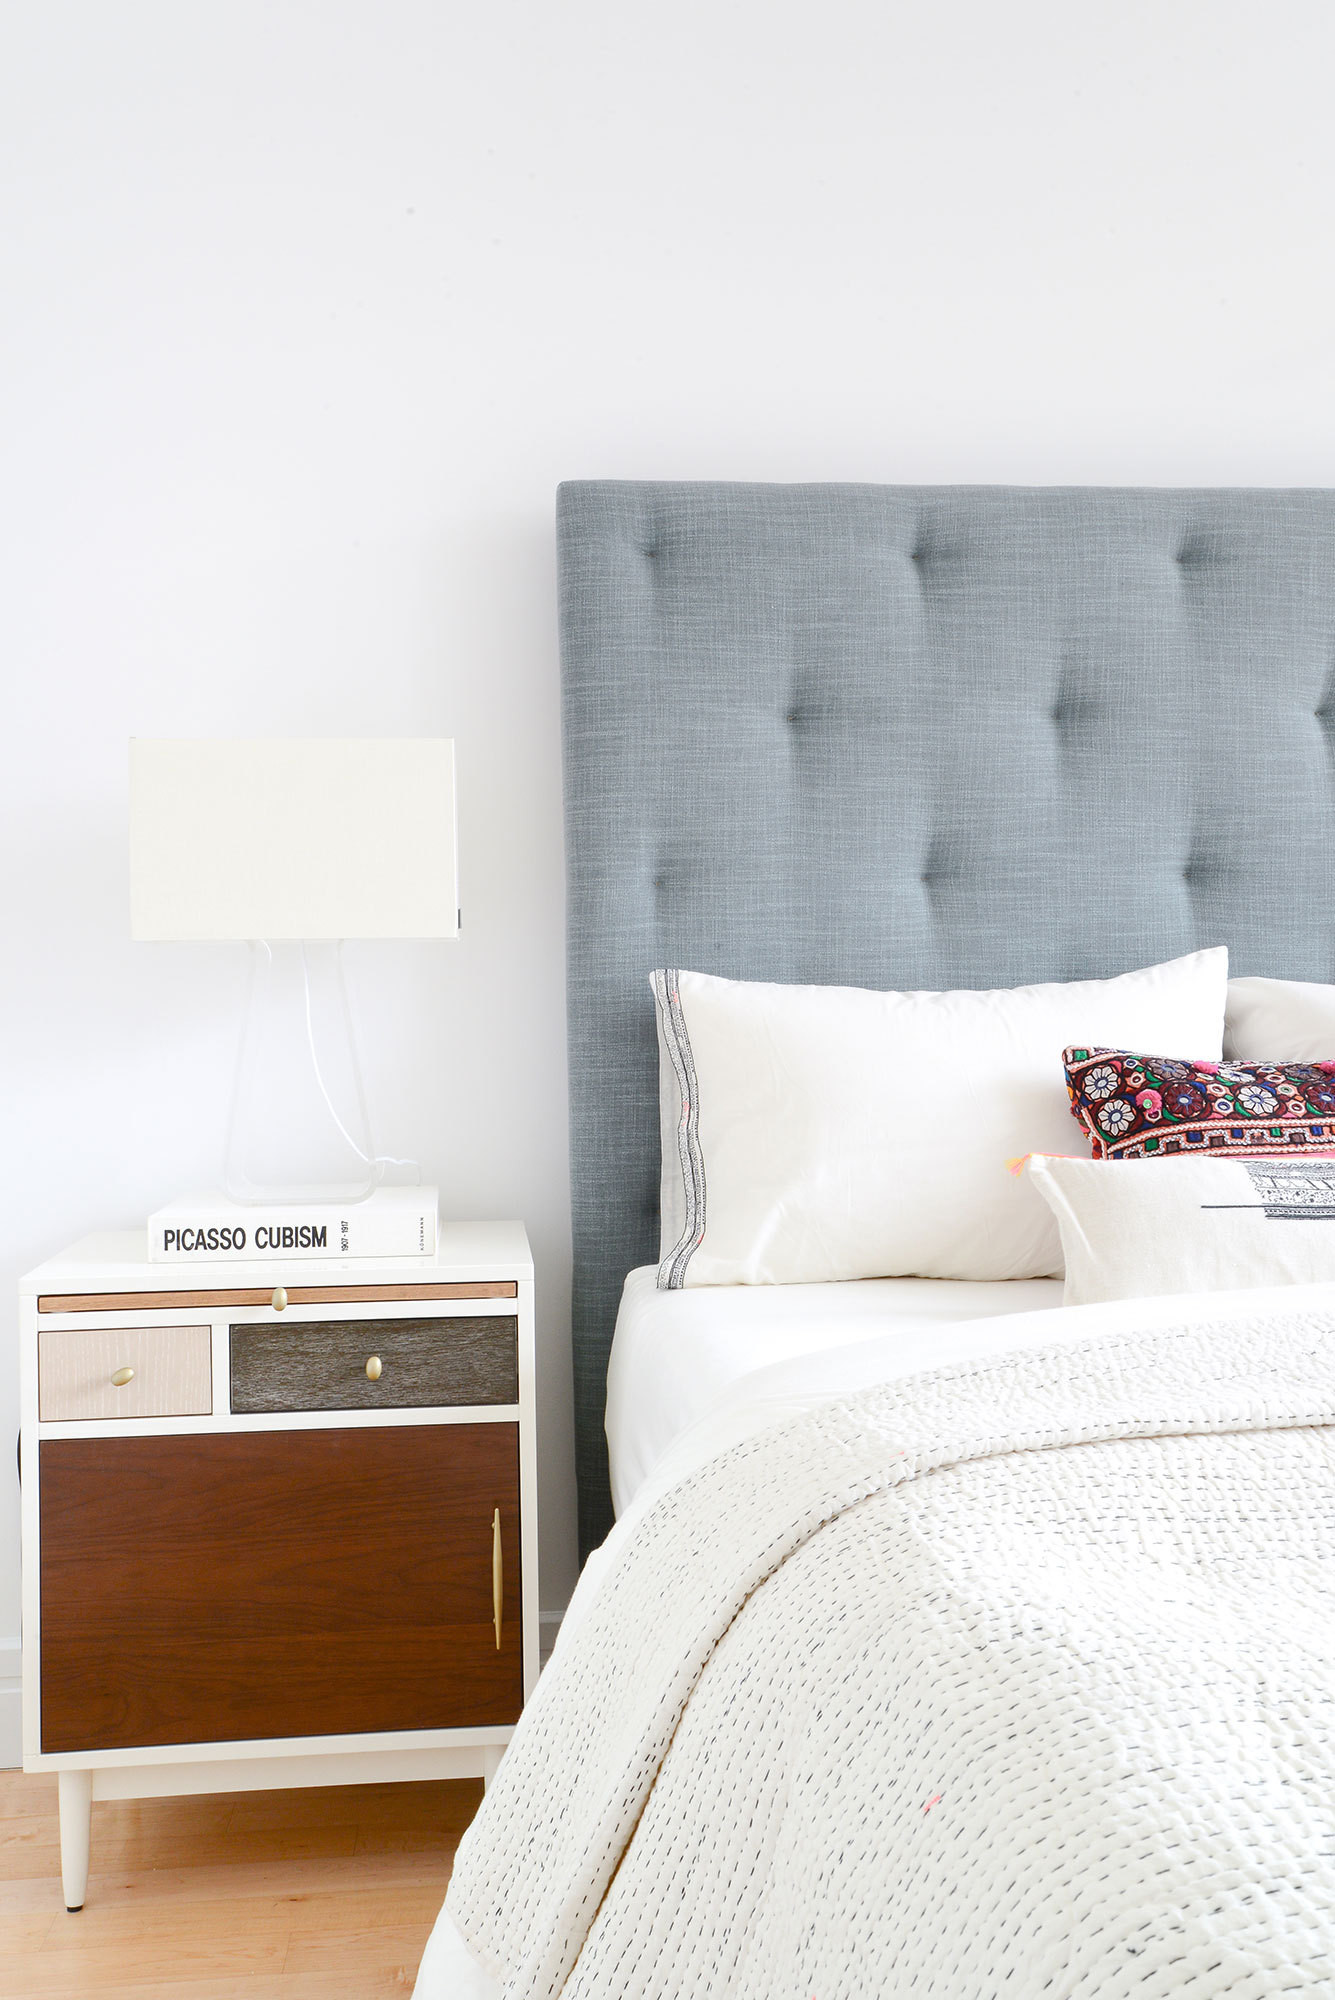 The bedroom features a more monochromatic palette, with a gray tufted headboard as a neutral anchor.